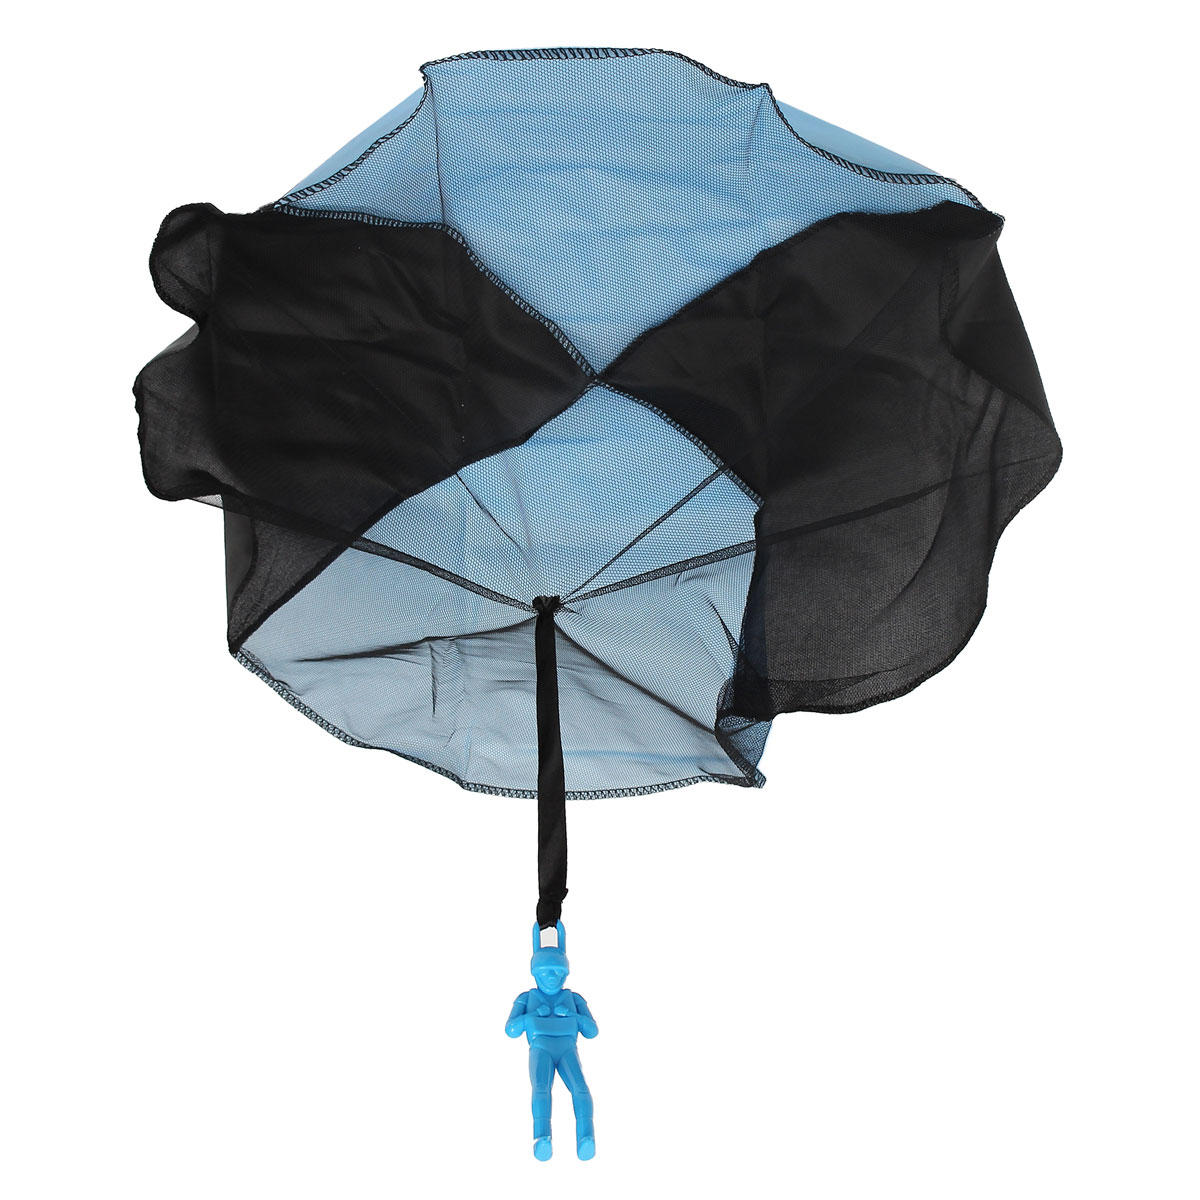 Kids Tangle Toy Hand Throwing Parachute Kite Outdoor Play Game Toy - 3